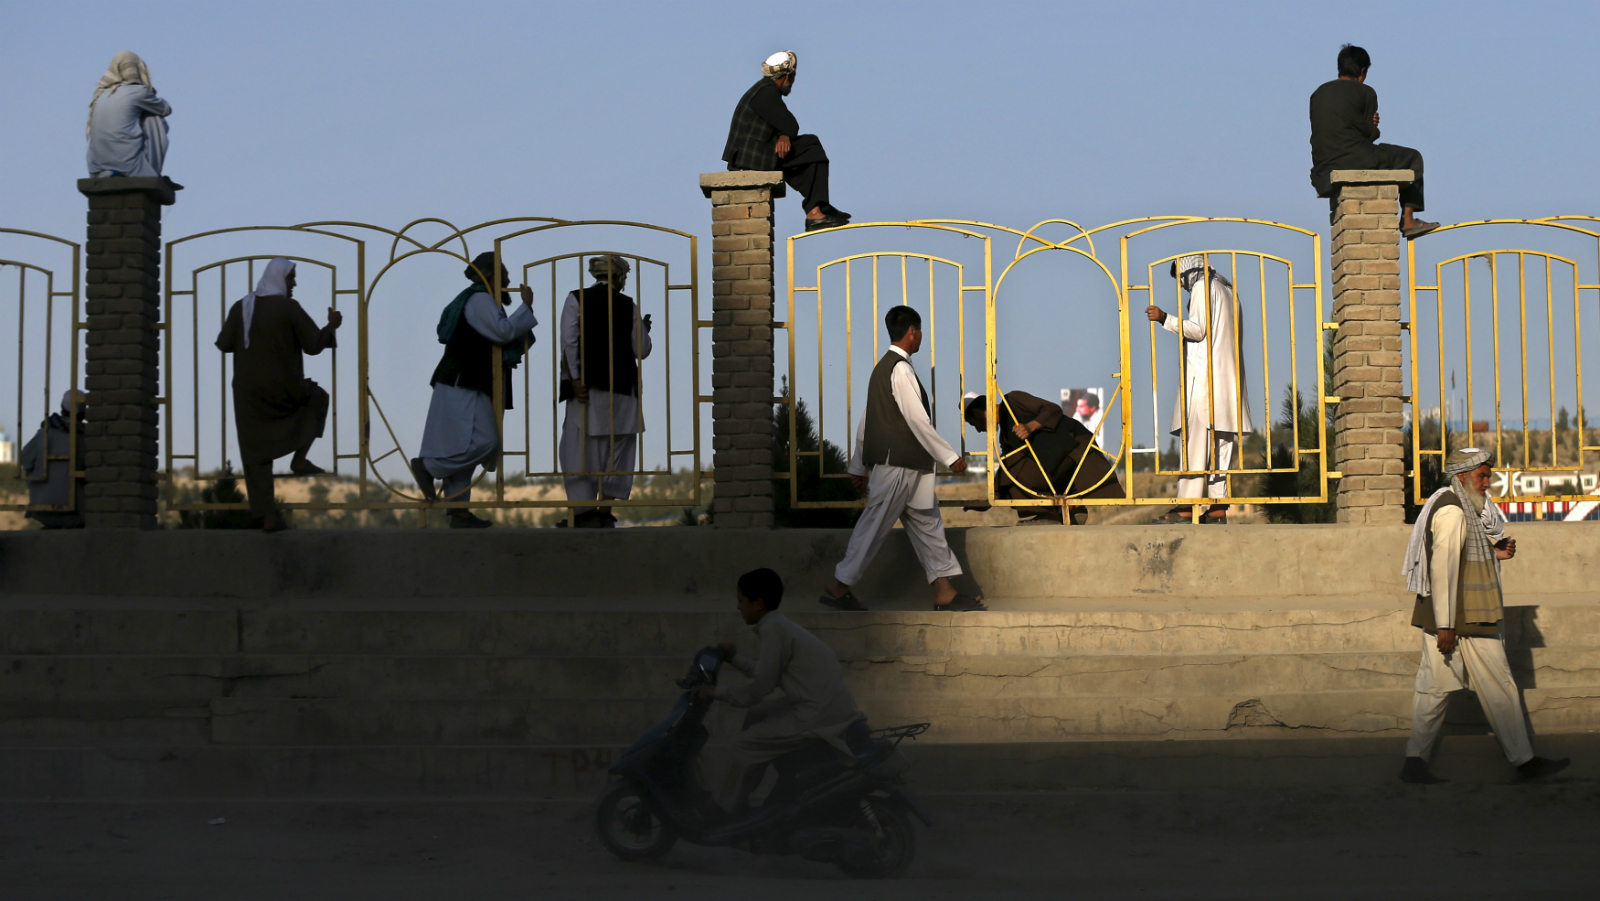 Afghan men sit on a wall as they watch others play football in Kabul, Afghanistan September 11, 2015.